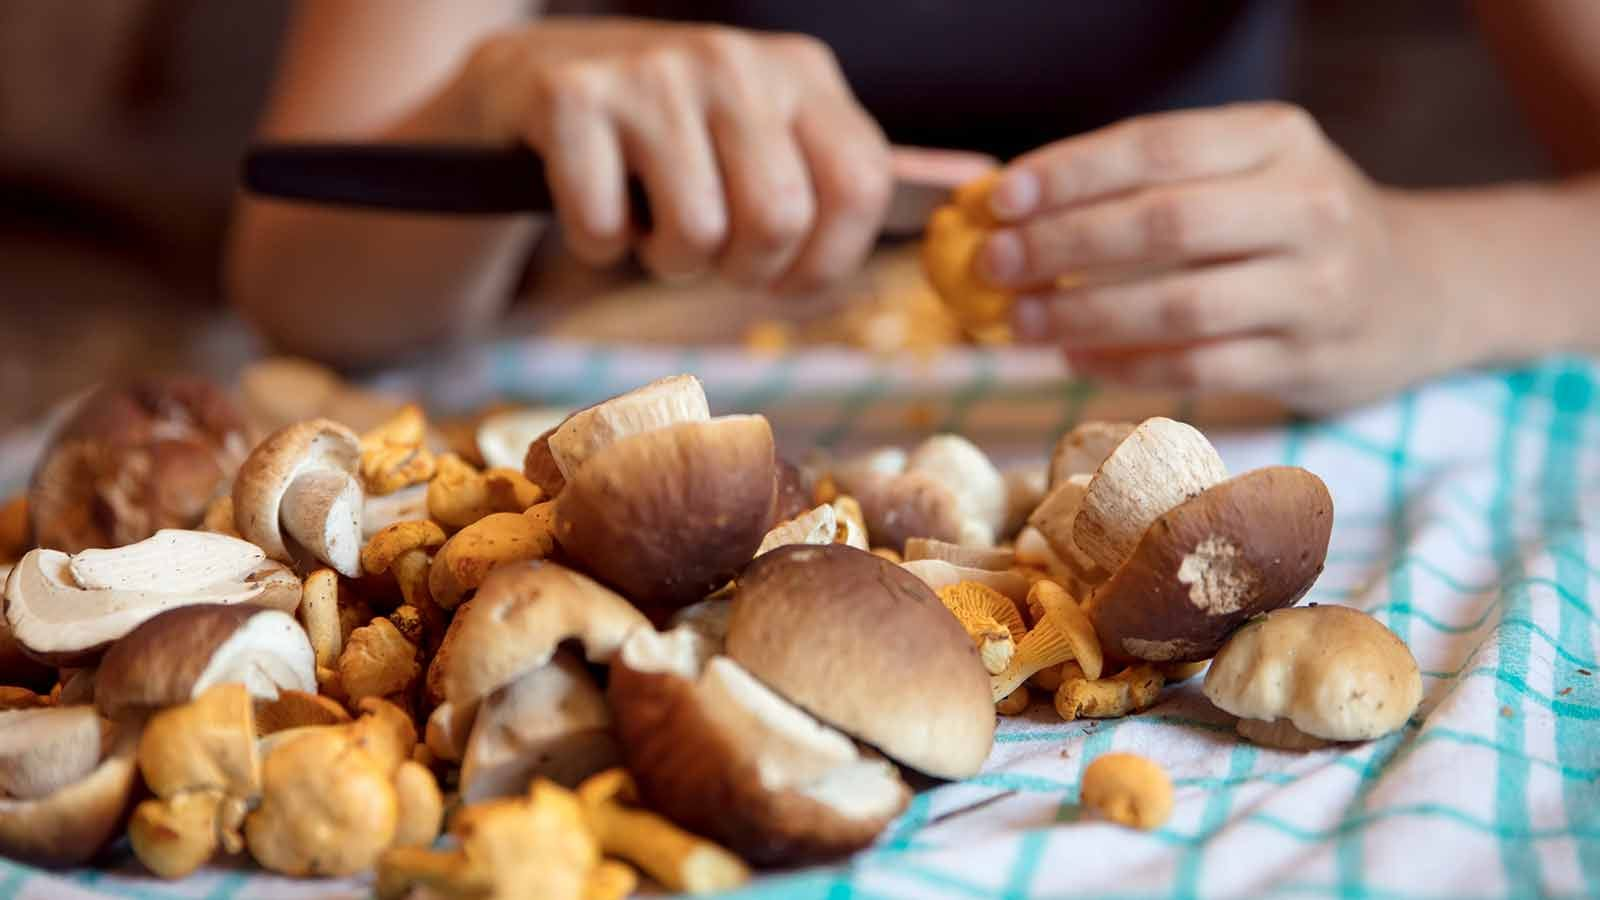 Woman cleaning wild mushrooms in the kitchen, porcini and chanterelles in the front